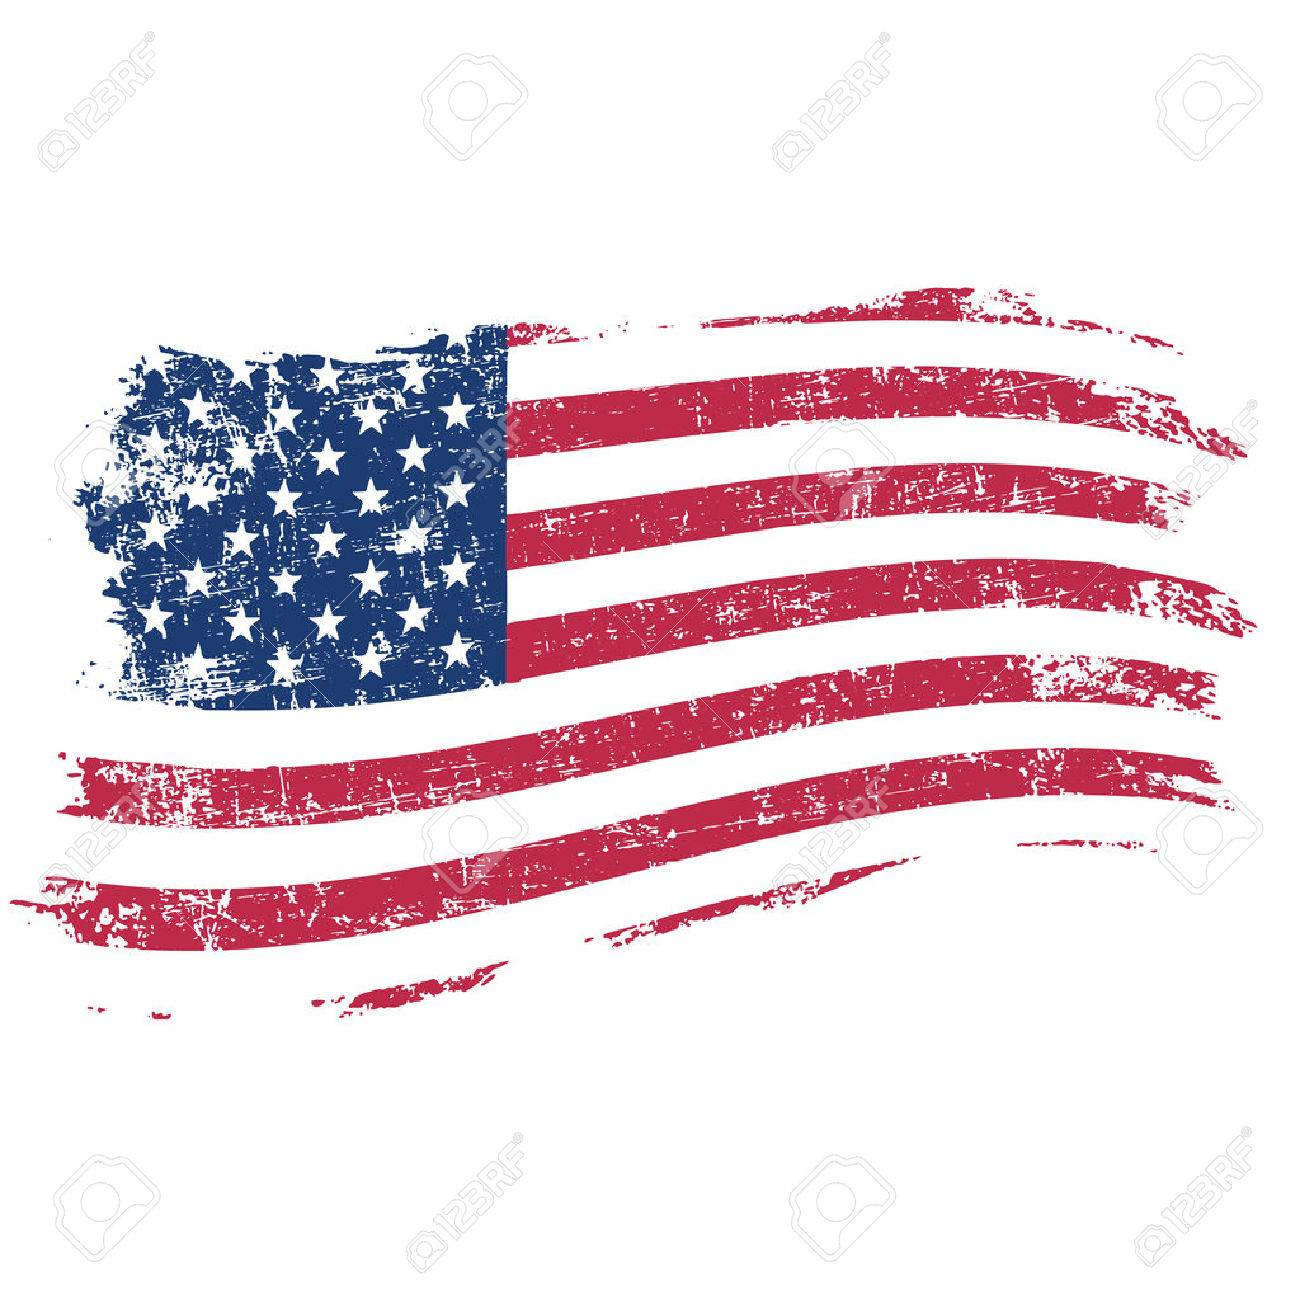 USA flag in grunge style on a white background - 52724355